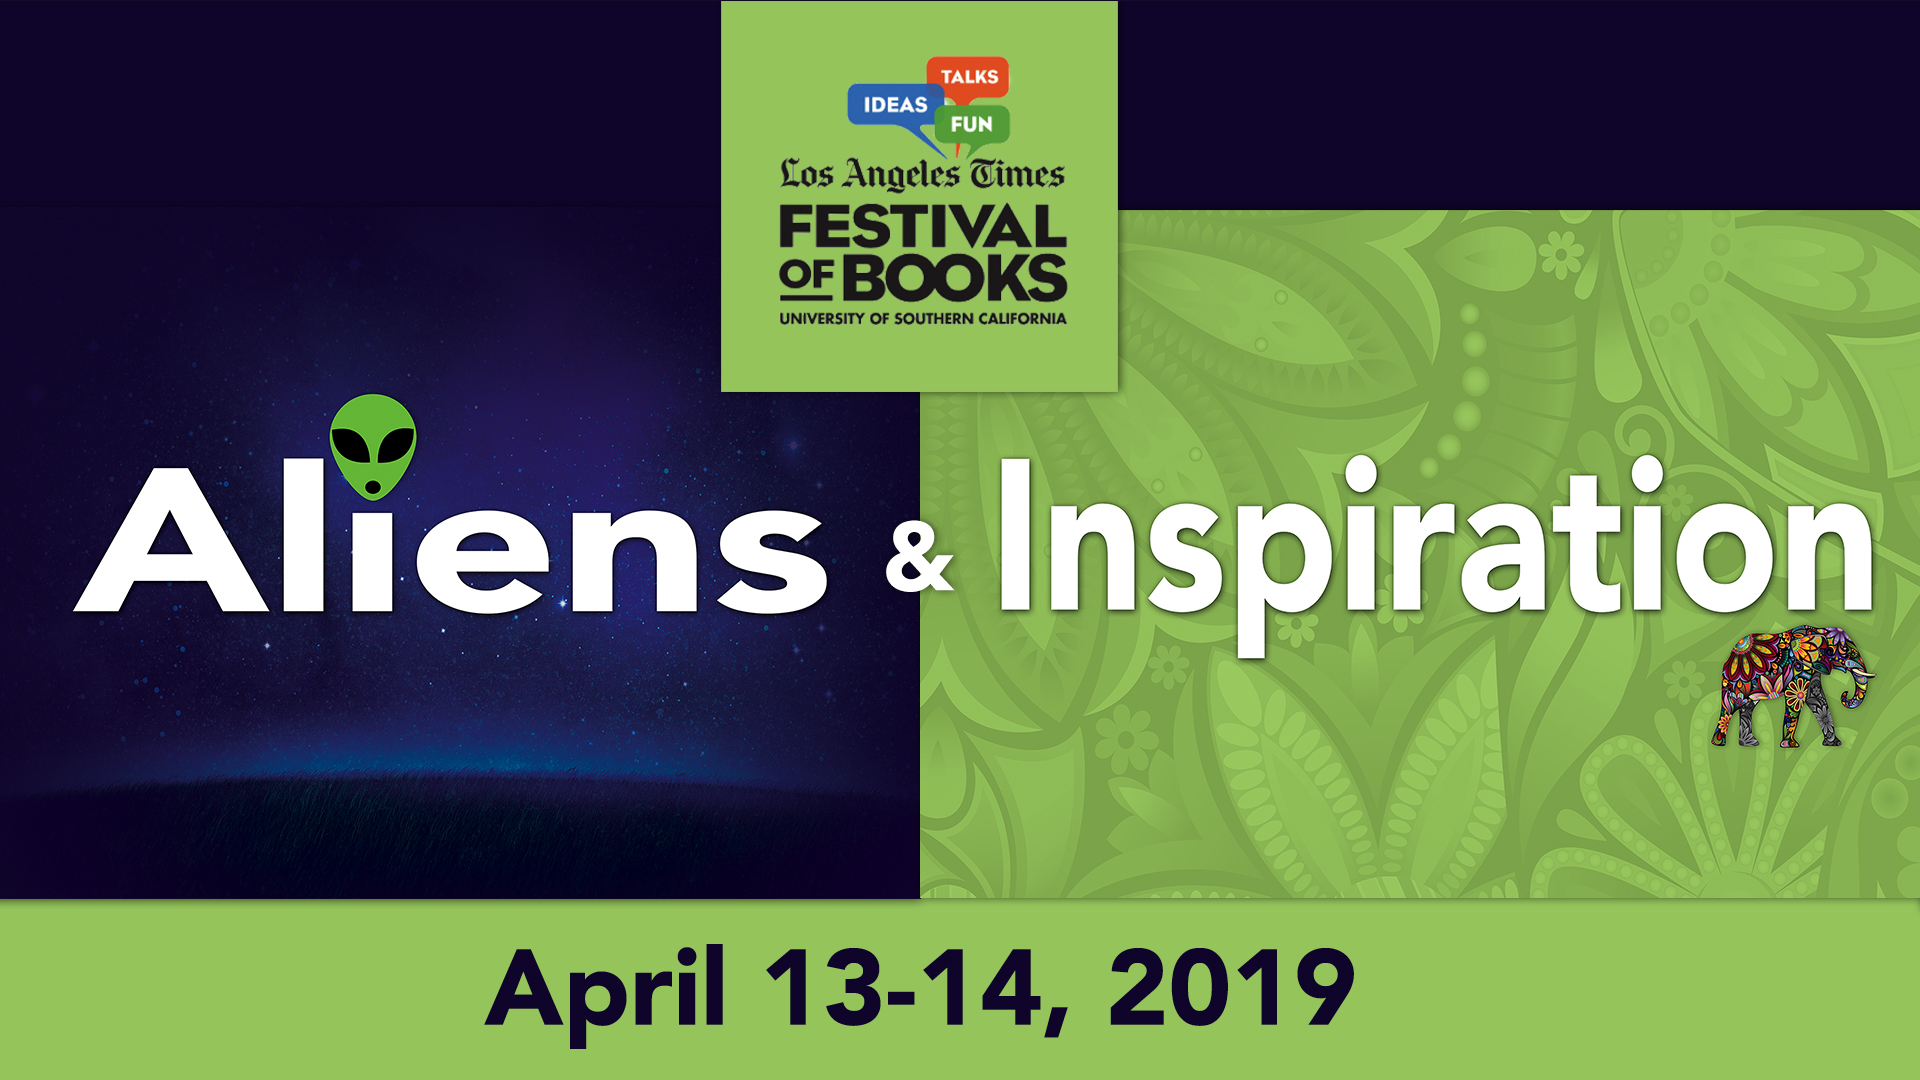 Los Angeles Times Festival of Books April 13-14, 2019